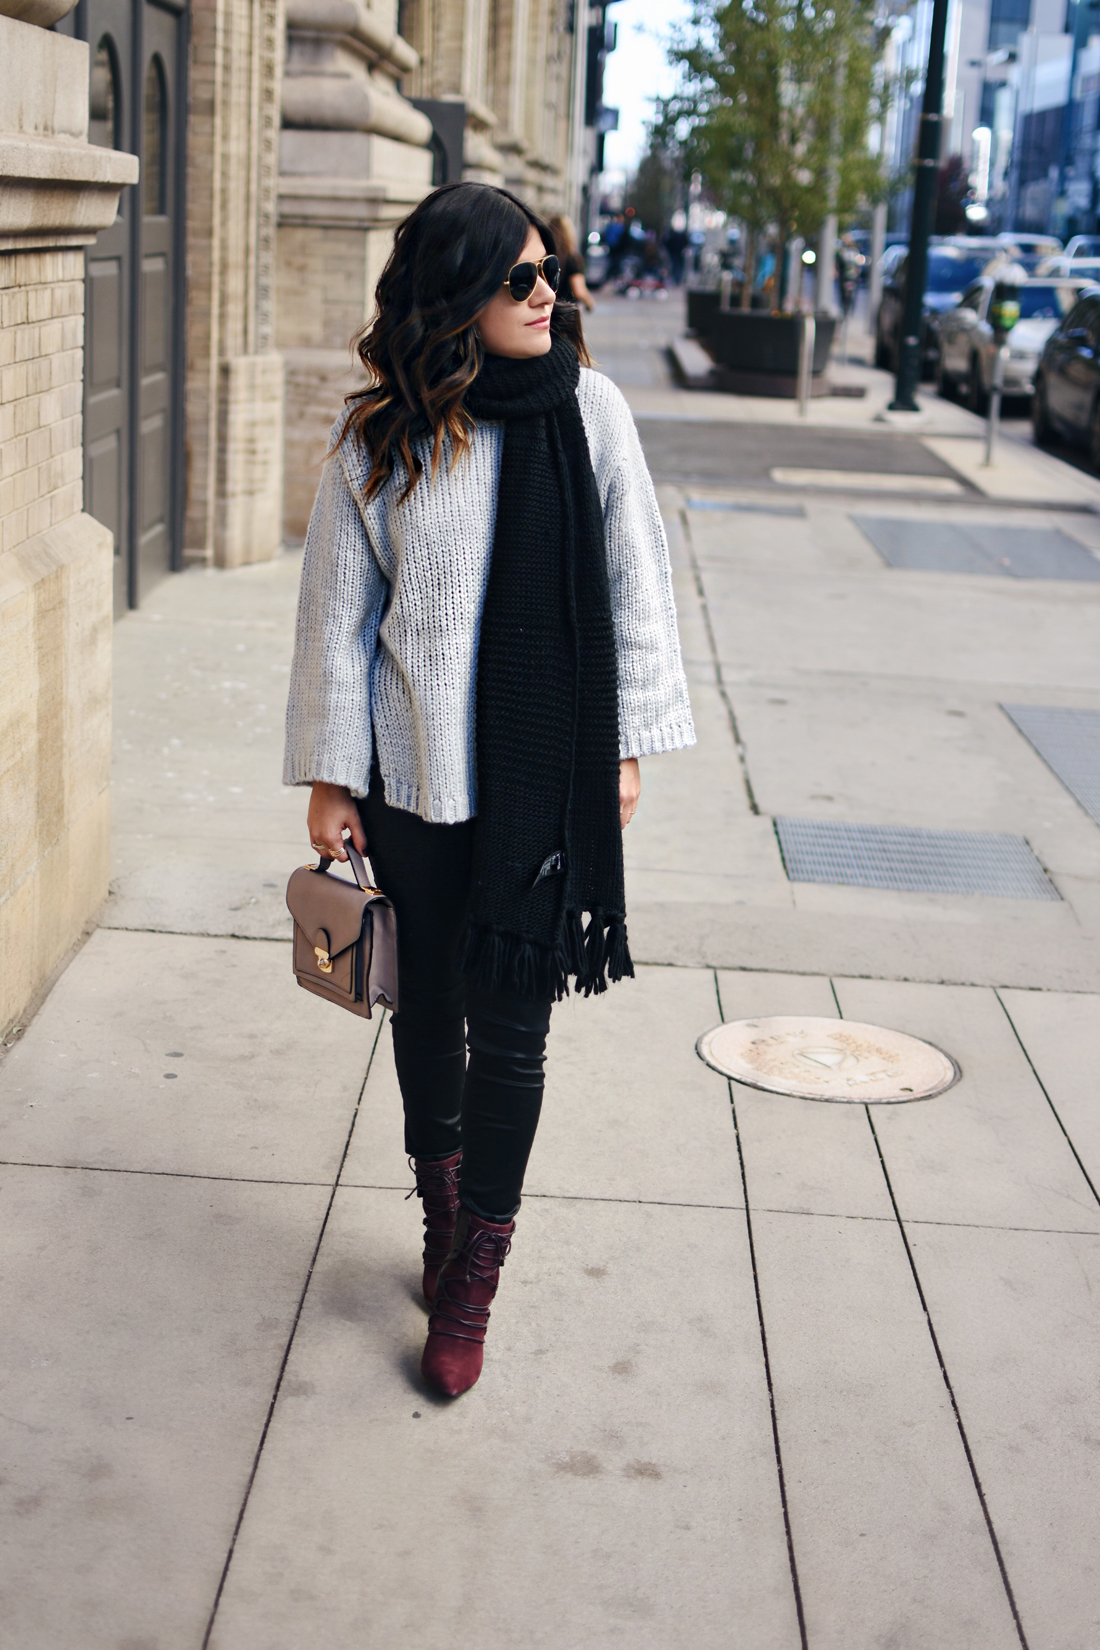 Carolina Hellal of Chic Talk wearing a Chicwish  knit sweater, Madewell coated jeans, Nine West lace up booties and Rayban aviator sunglasses